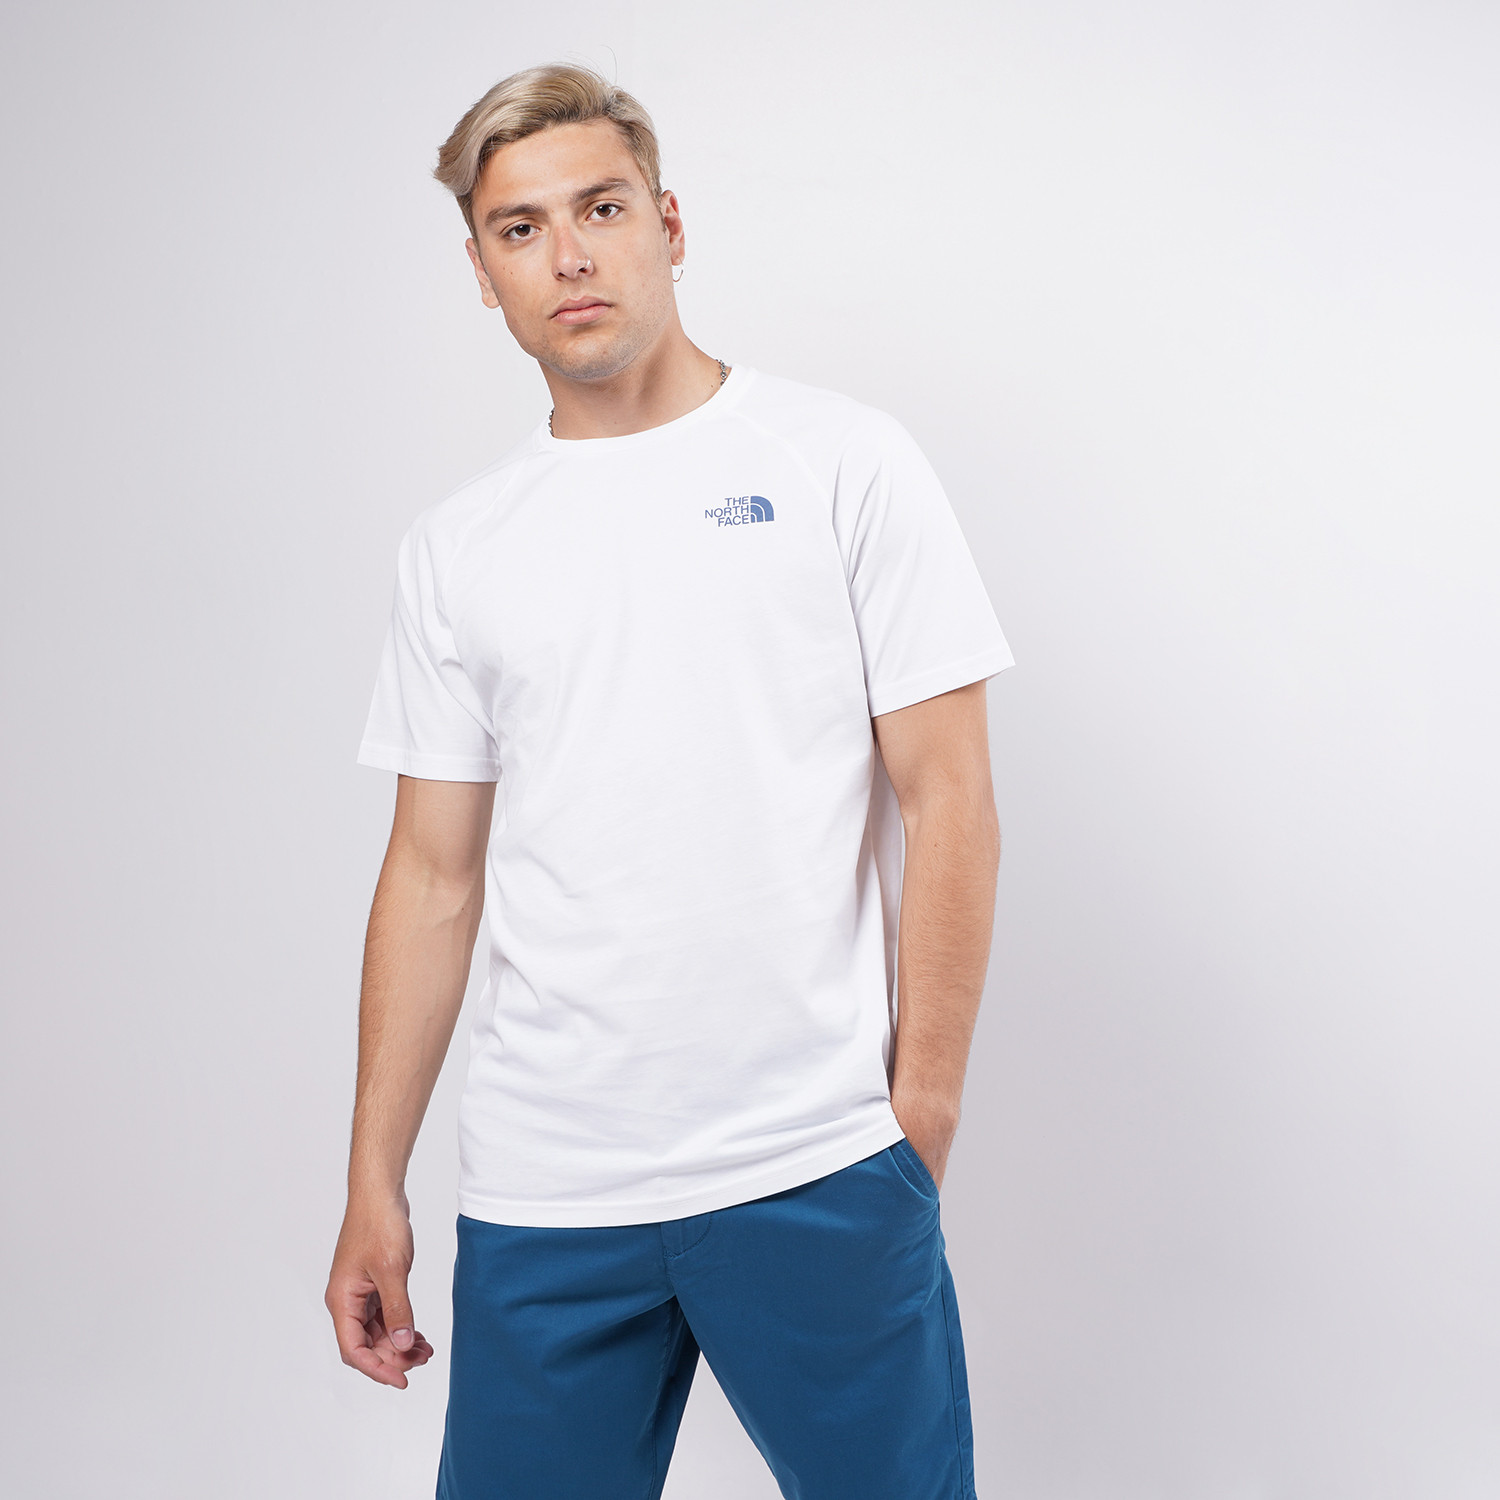 the north face The North Face Ανδρικό T-shirt (9000073493_51531)